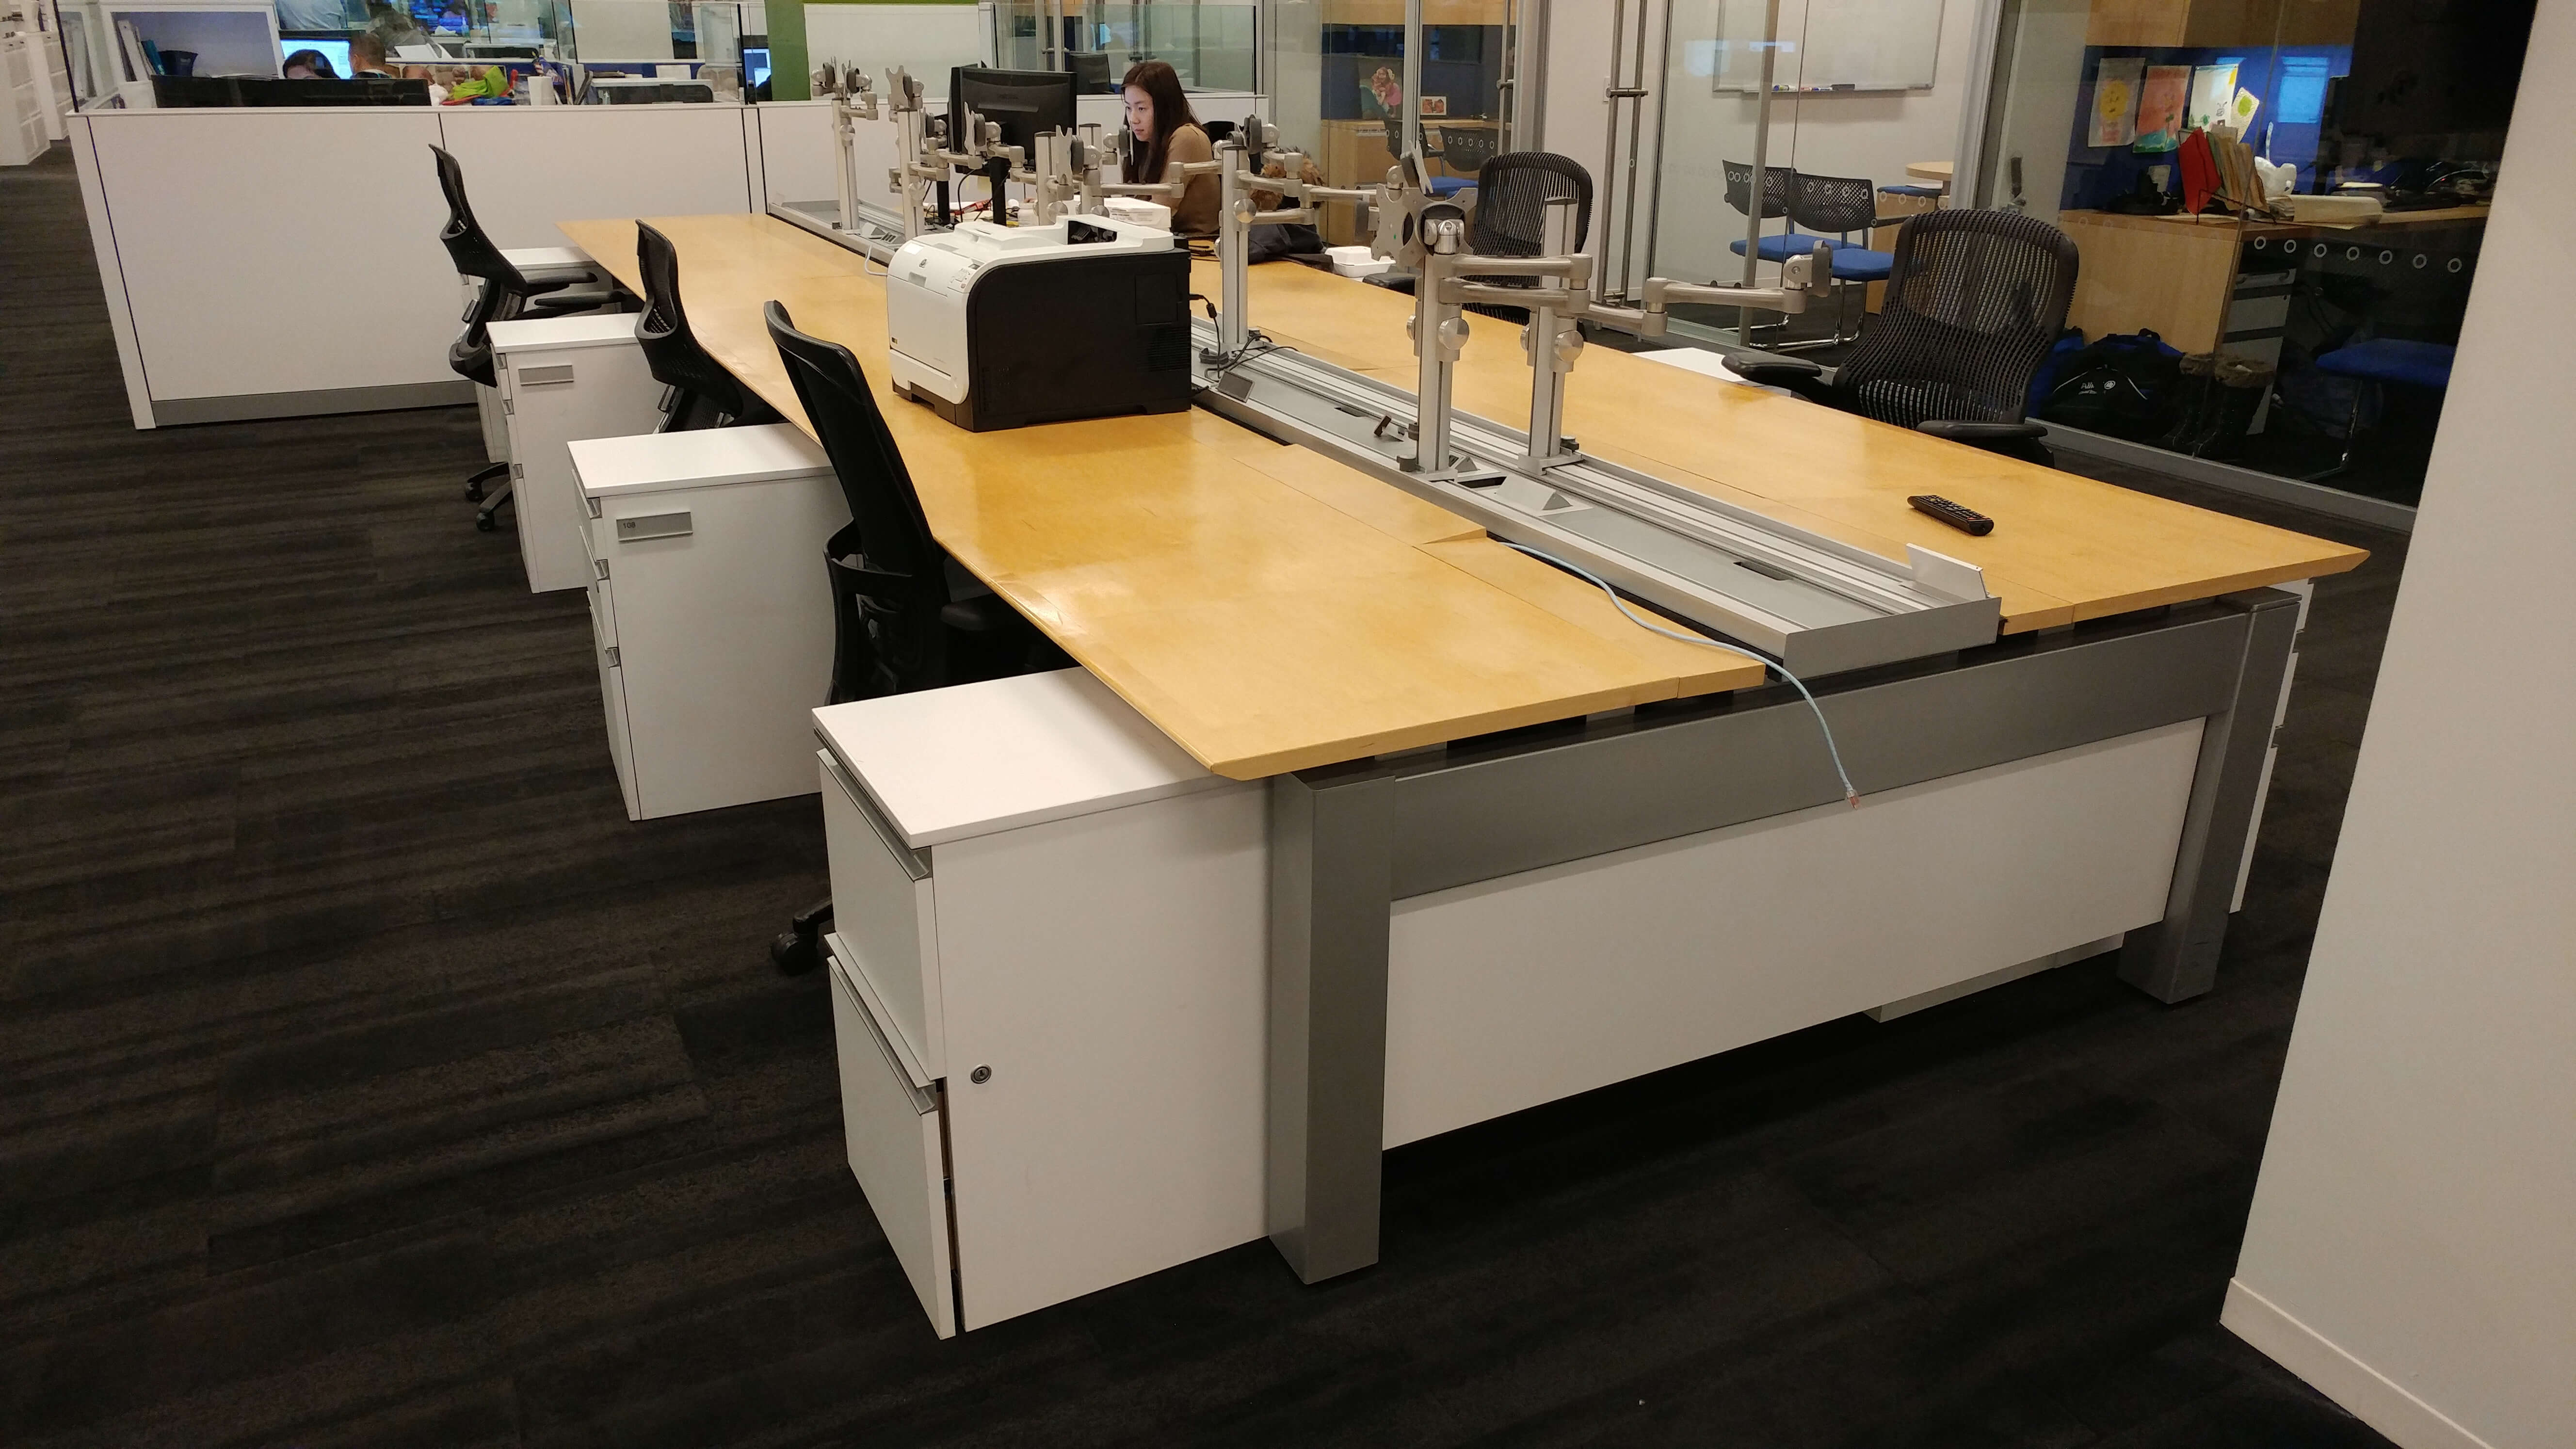 Knoll Benching - Work area